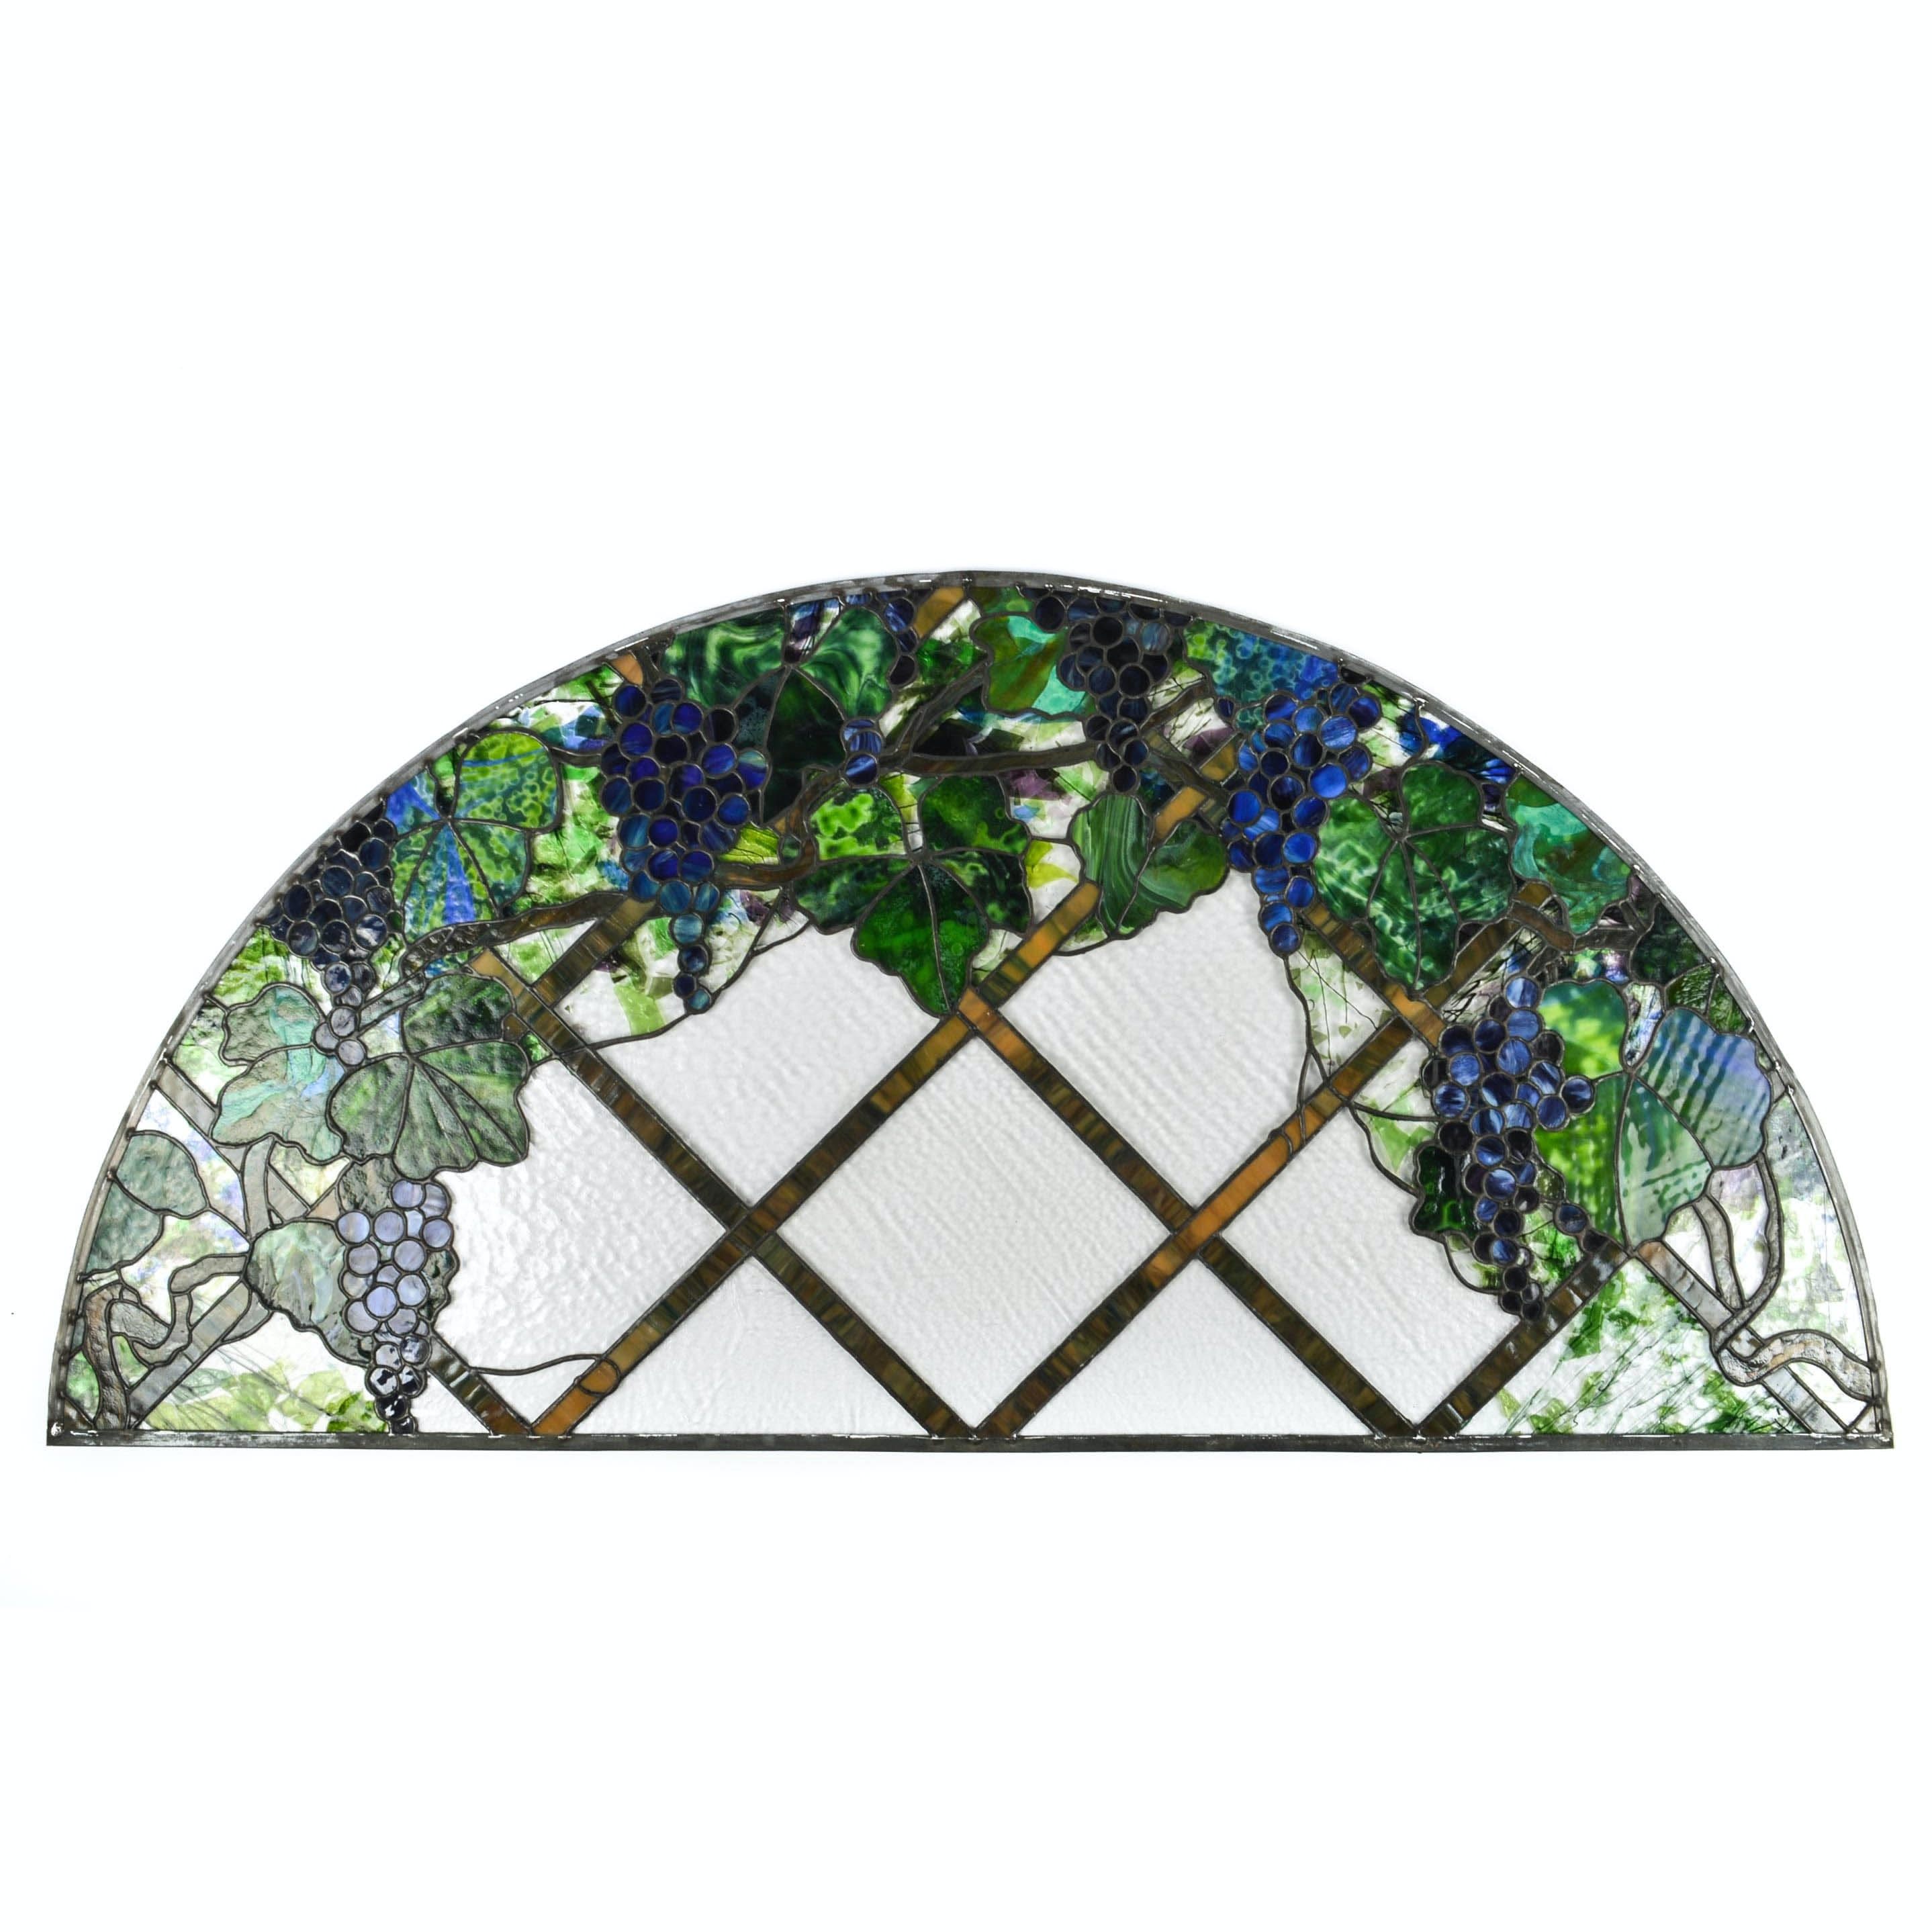 Salvaged Demi-Circle Stained Glass Window Panel